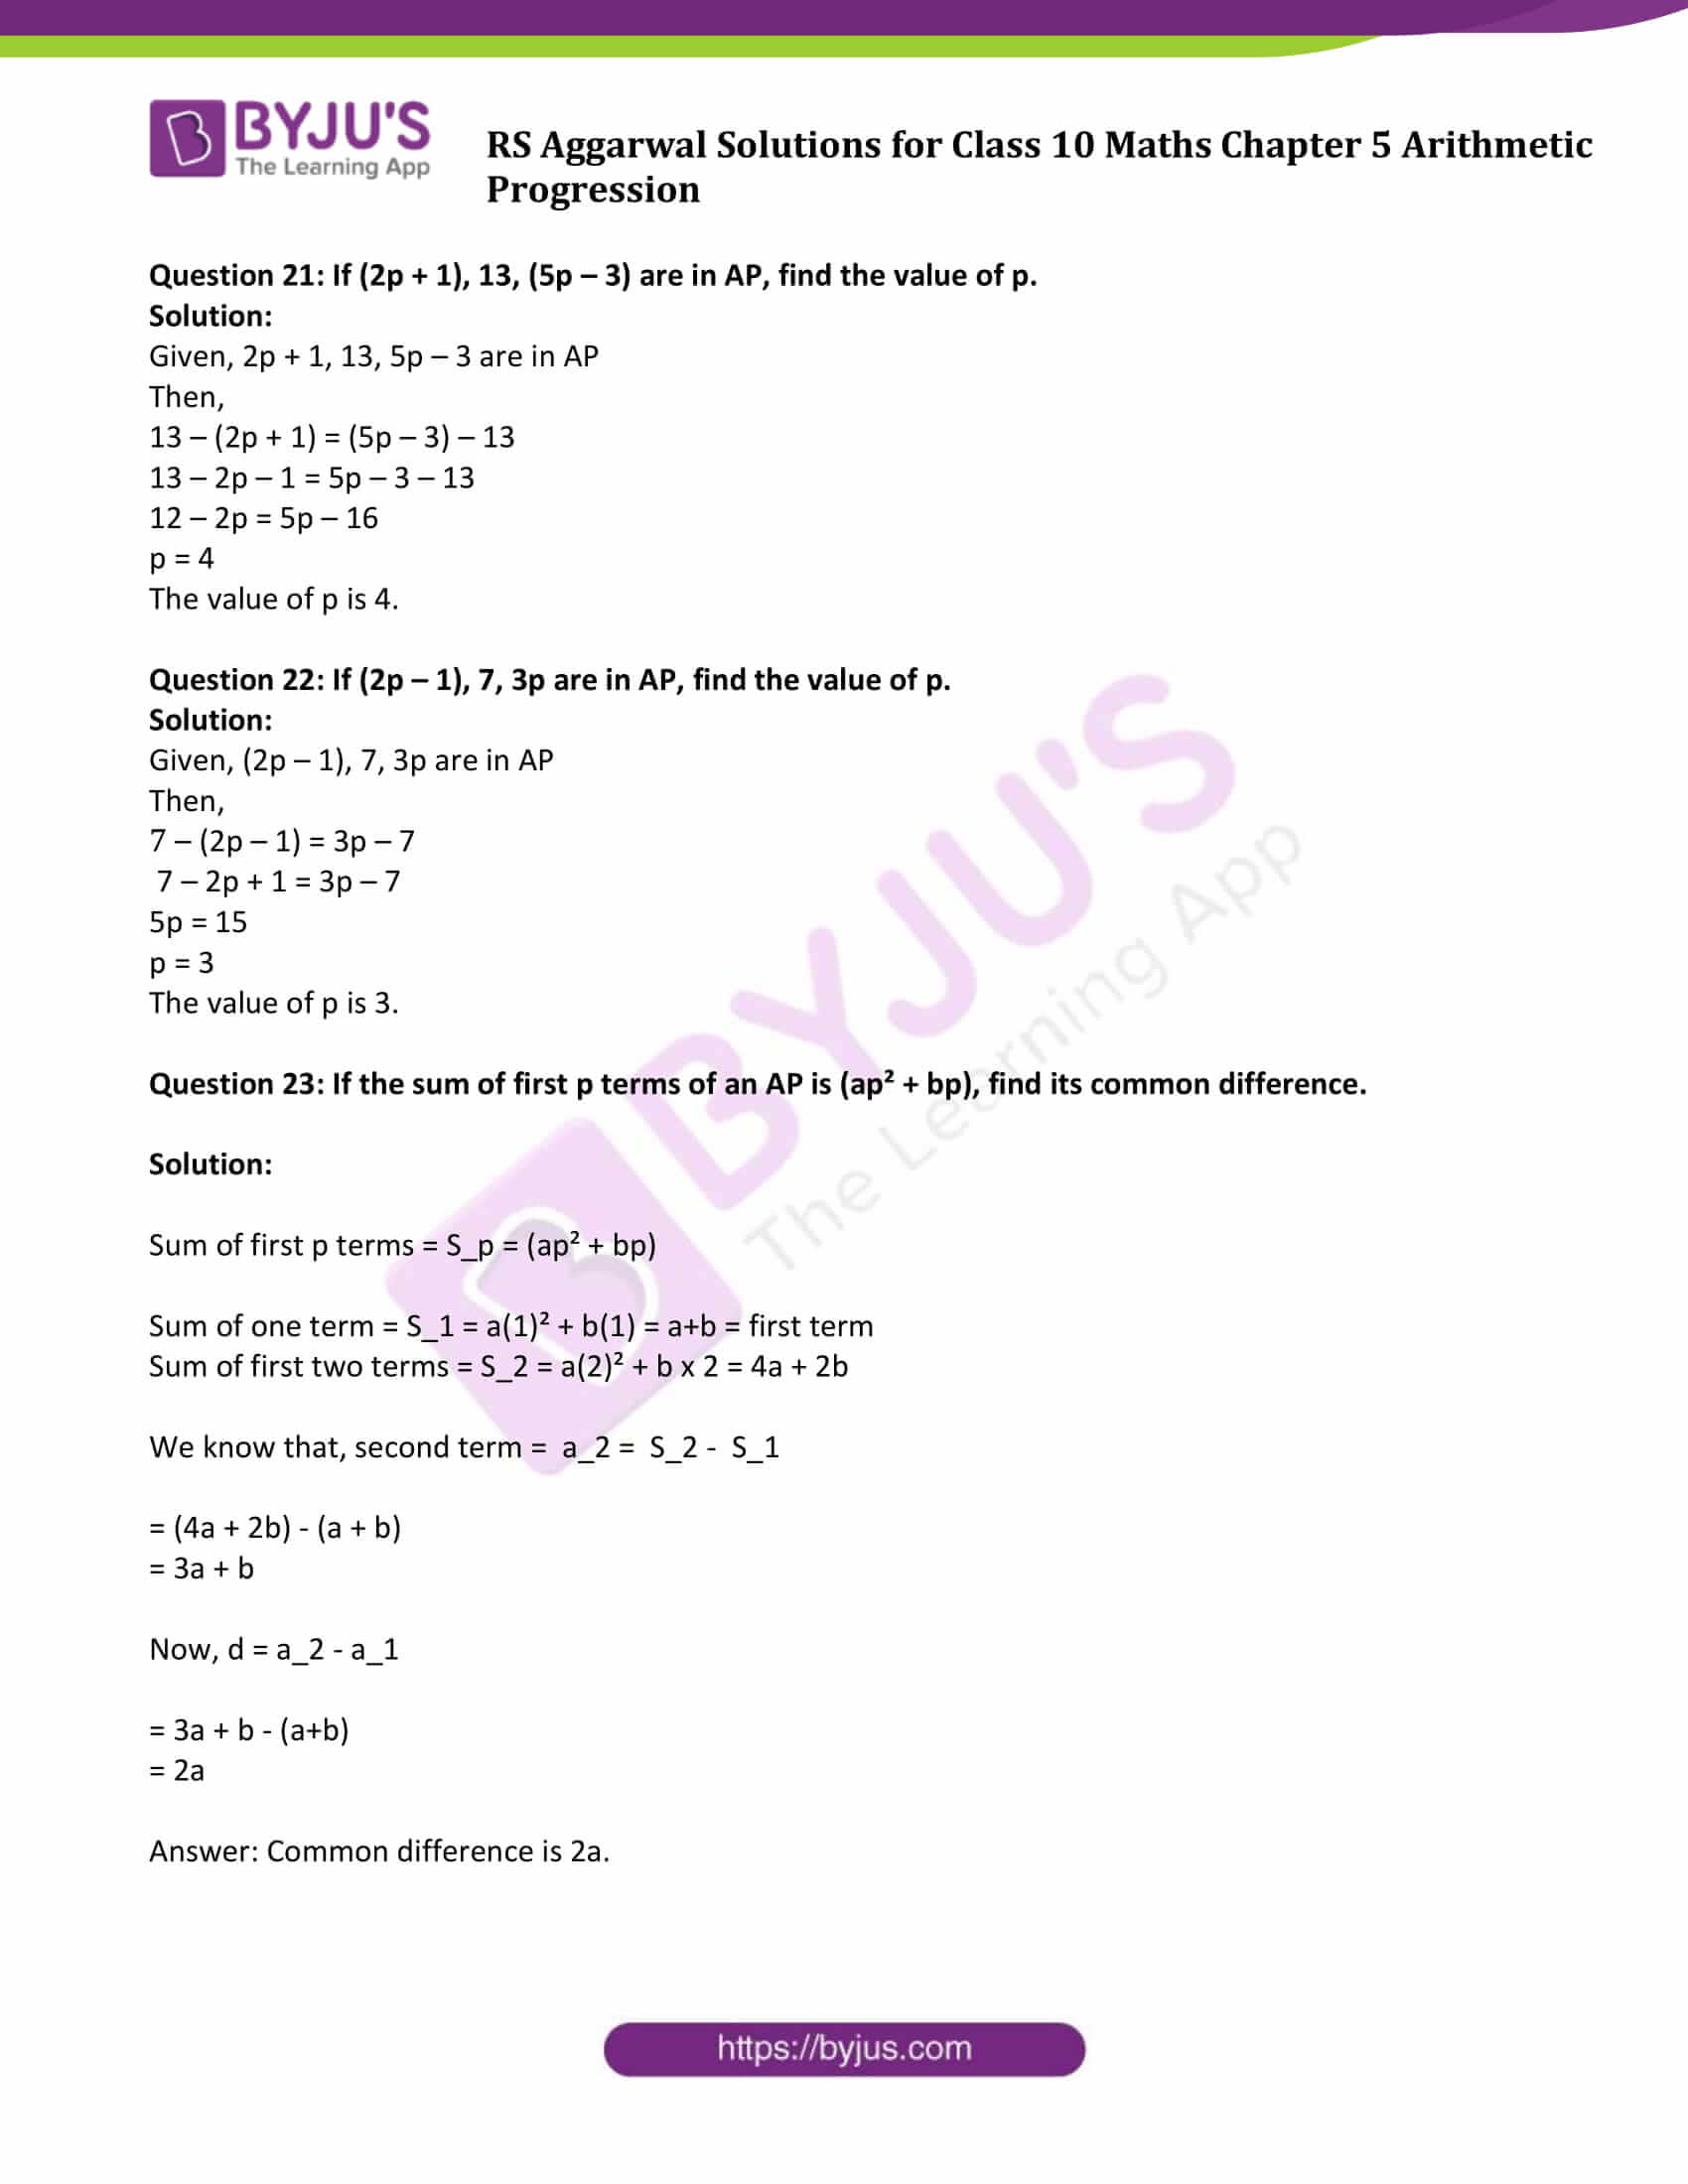 RS Aggarwal Sol class 10 Maths Chapter 5D